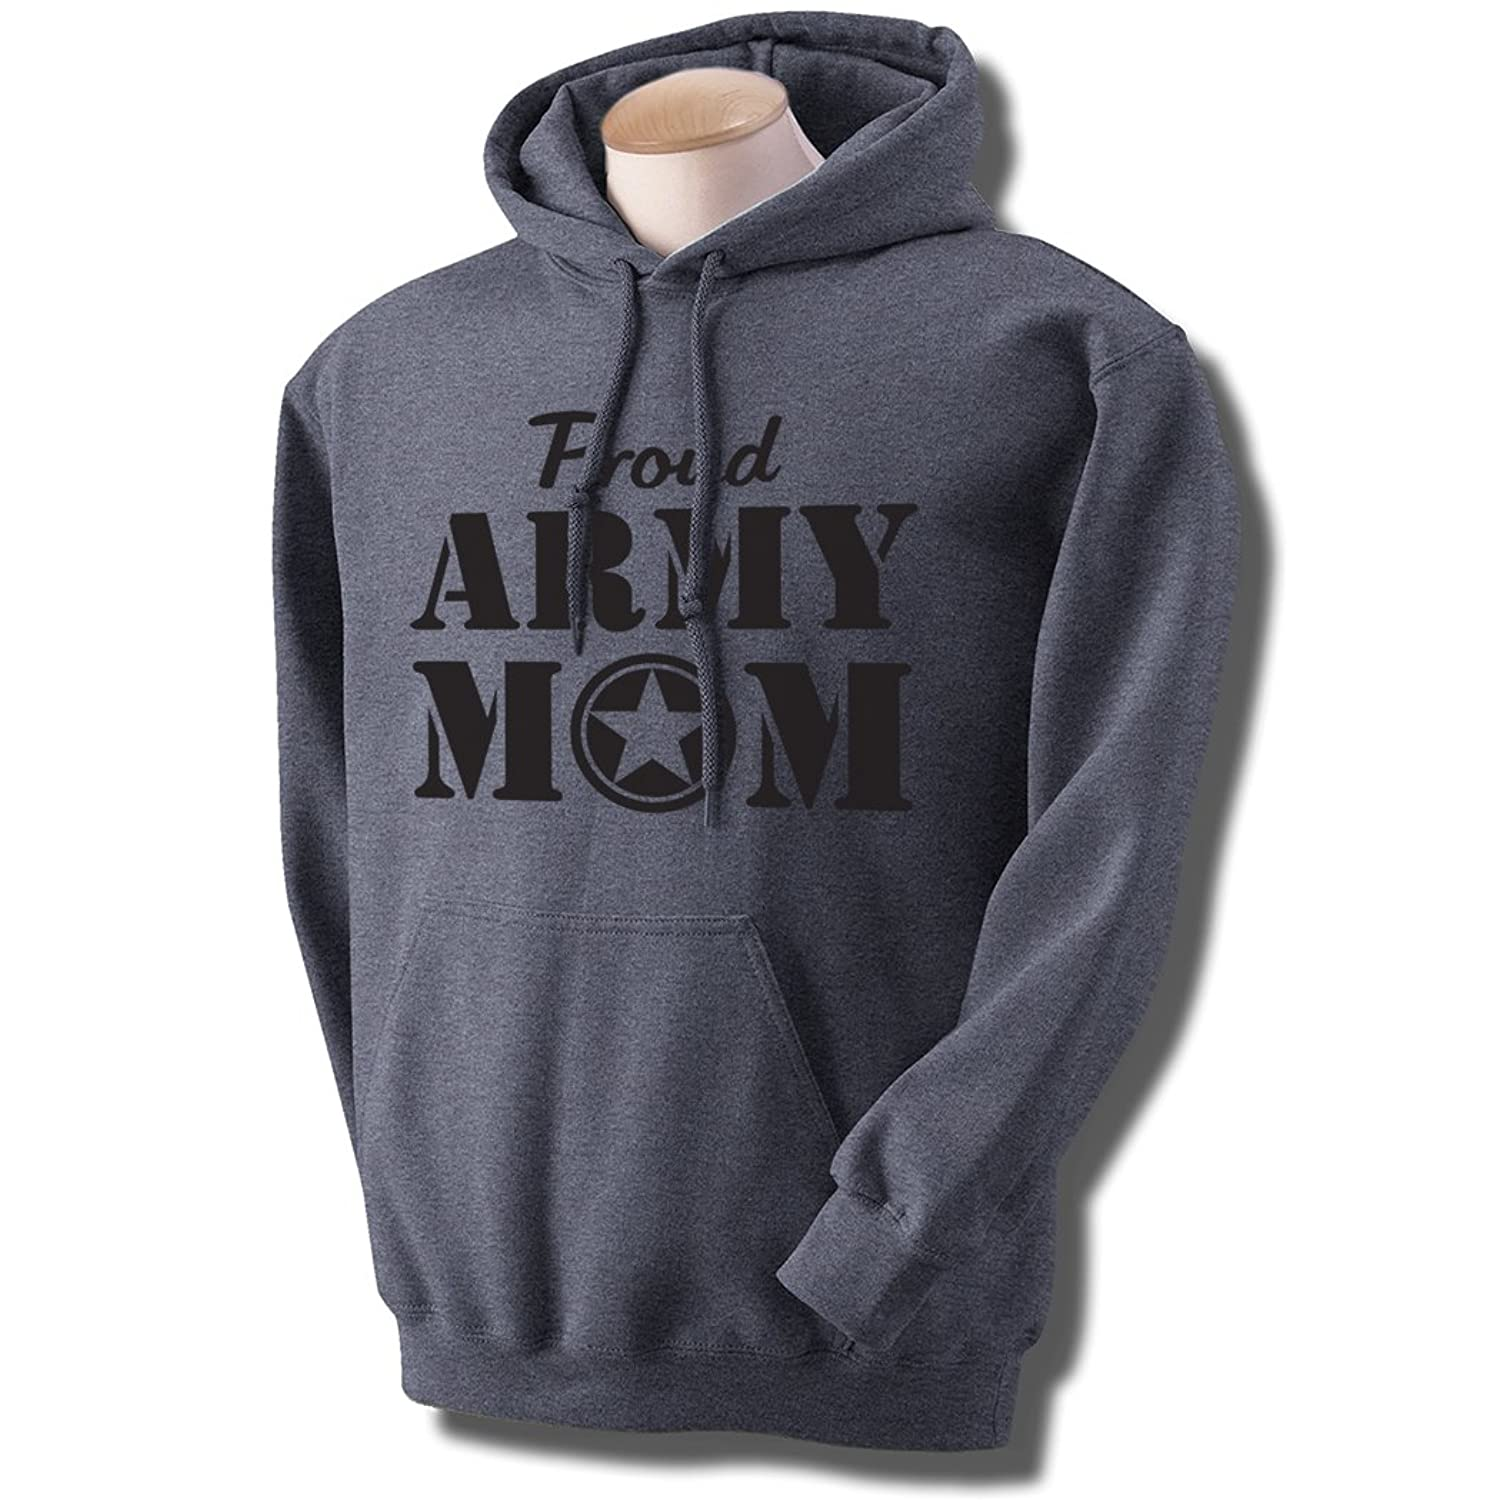 Proud Army Mom Hooded Sweatshirt in Dark Heather Gray at Amazon ...